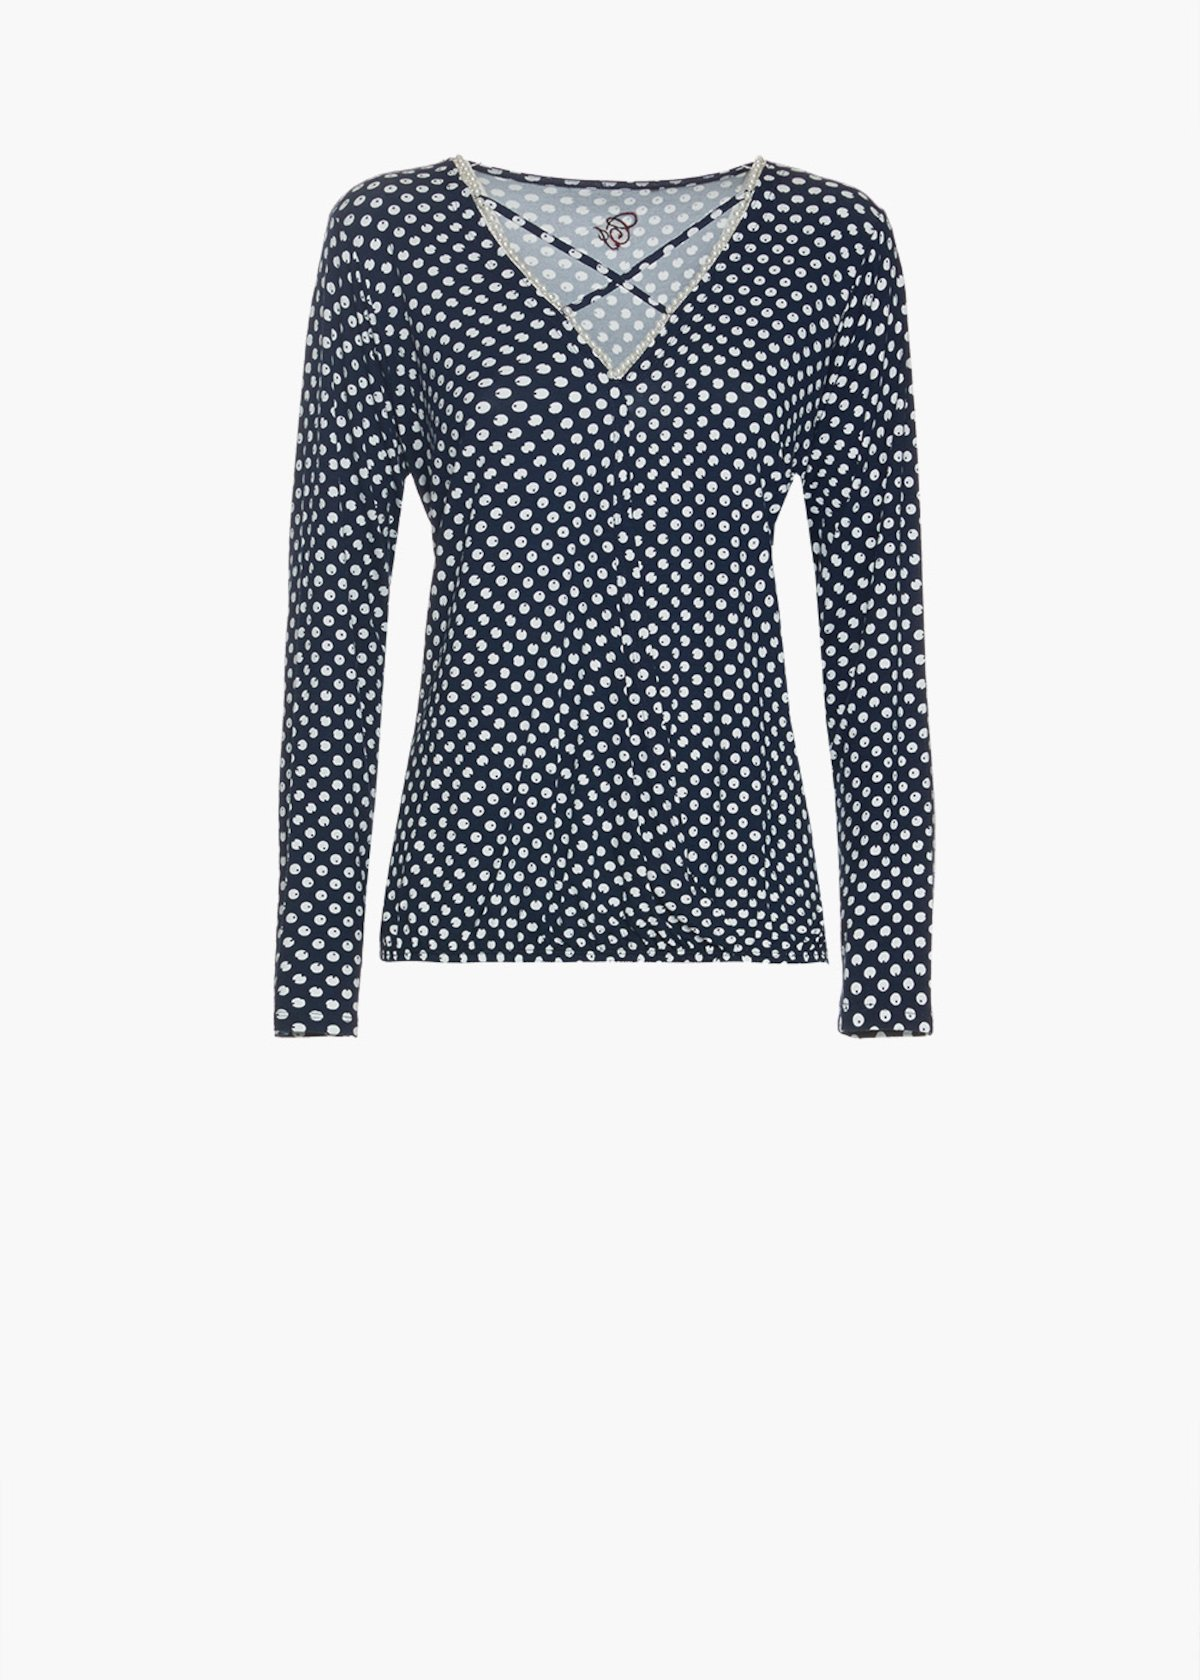 T-shirt Stasys in all over printed jersey with V-neckline - Medium Blue / White Pois - Woman